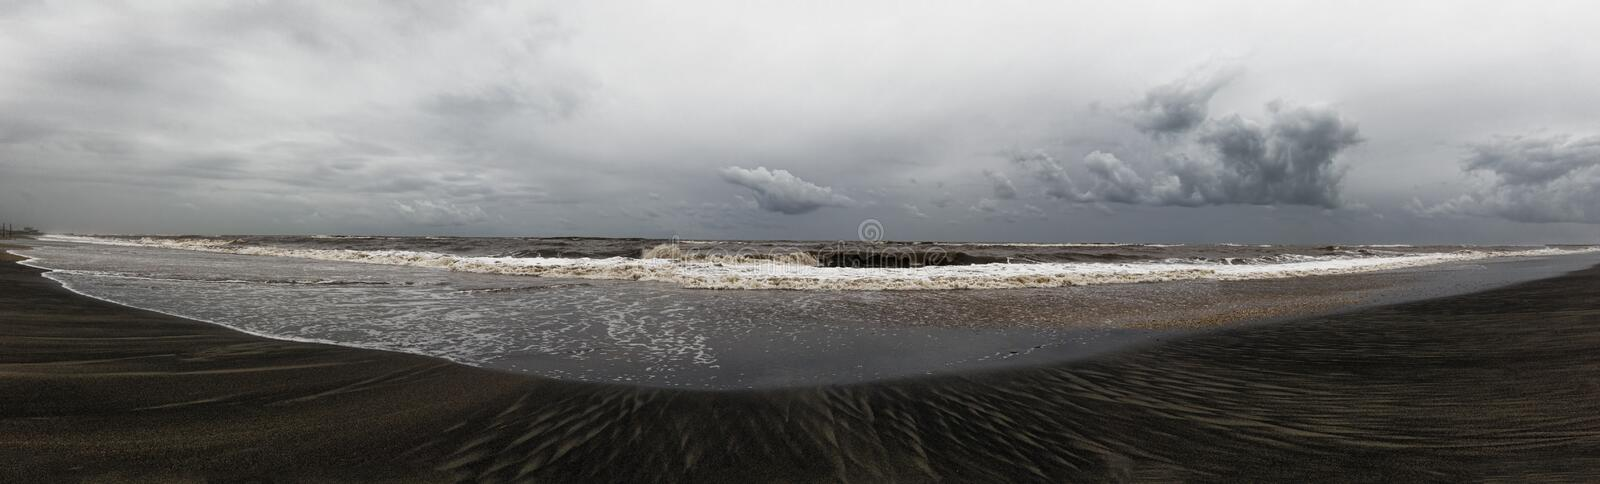 Stormy weather on the beach, the waves crash on the shore leaving their mark, overcast sky with beautiful cumulus clouds rain, stock images